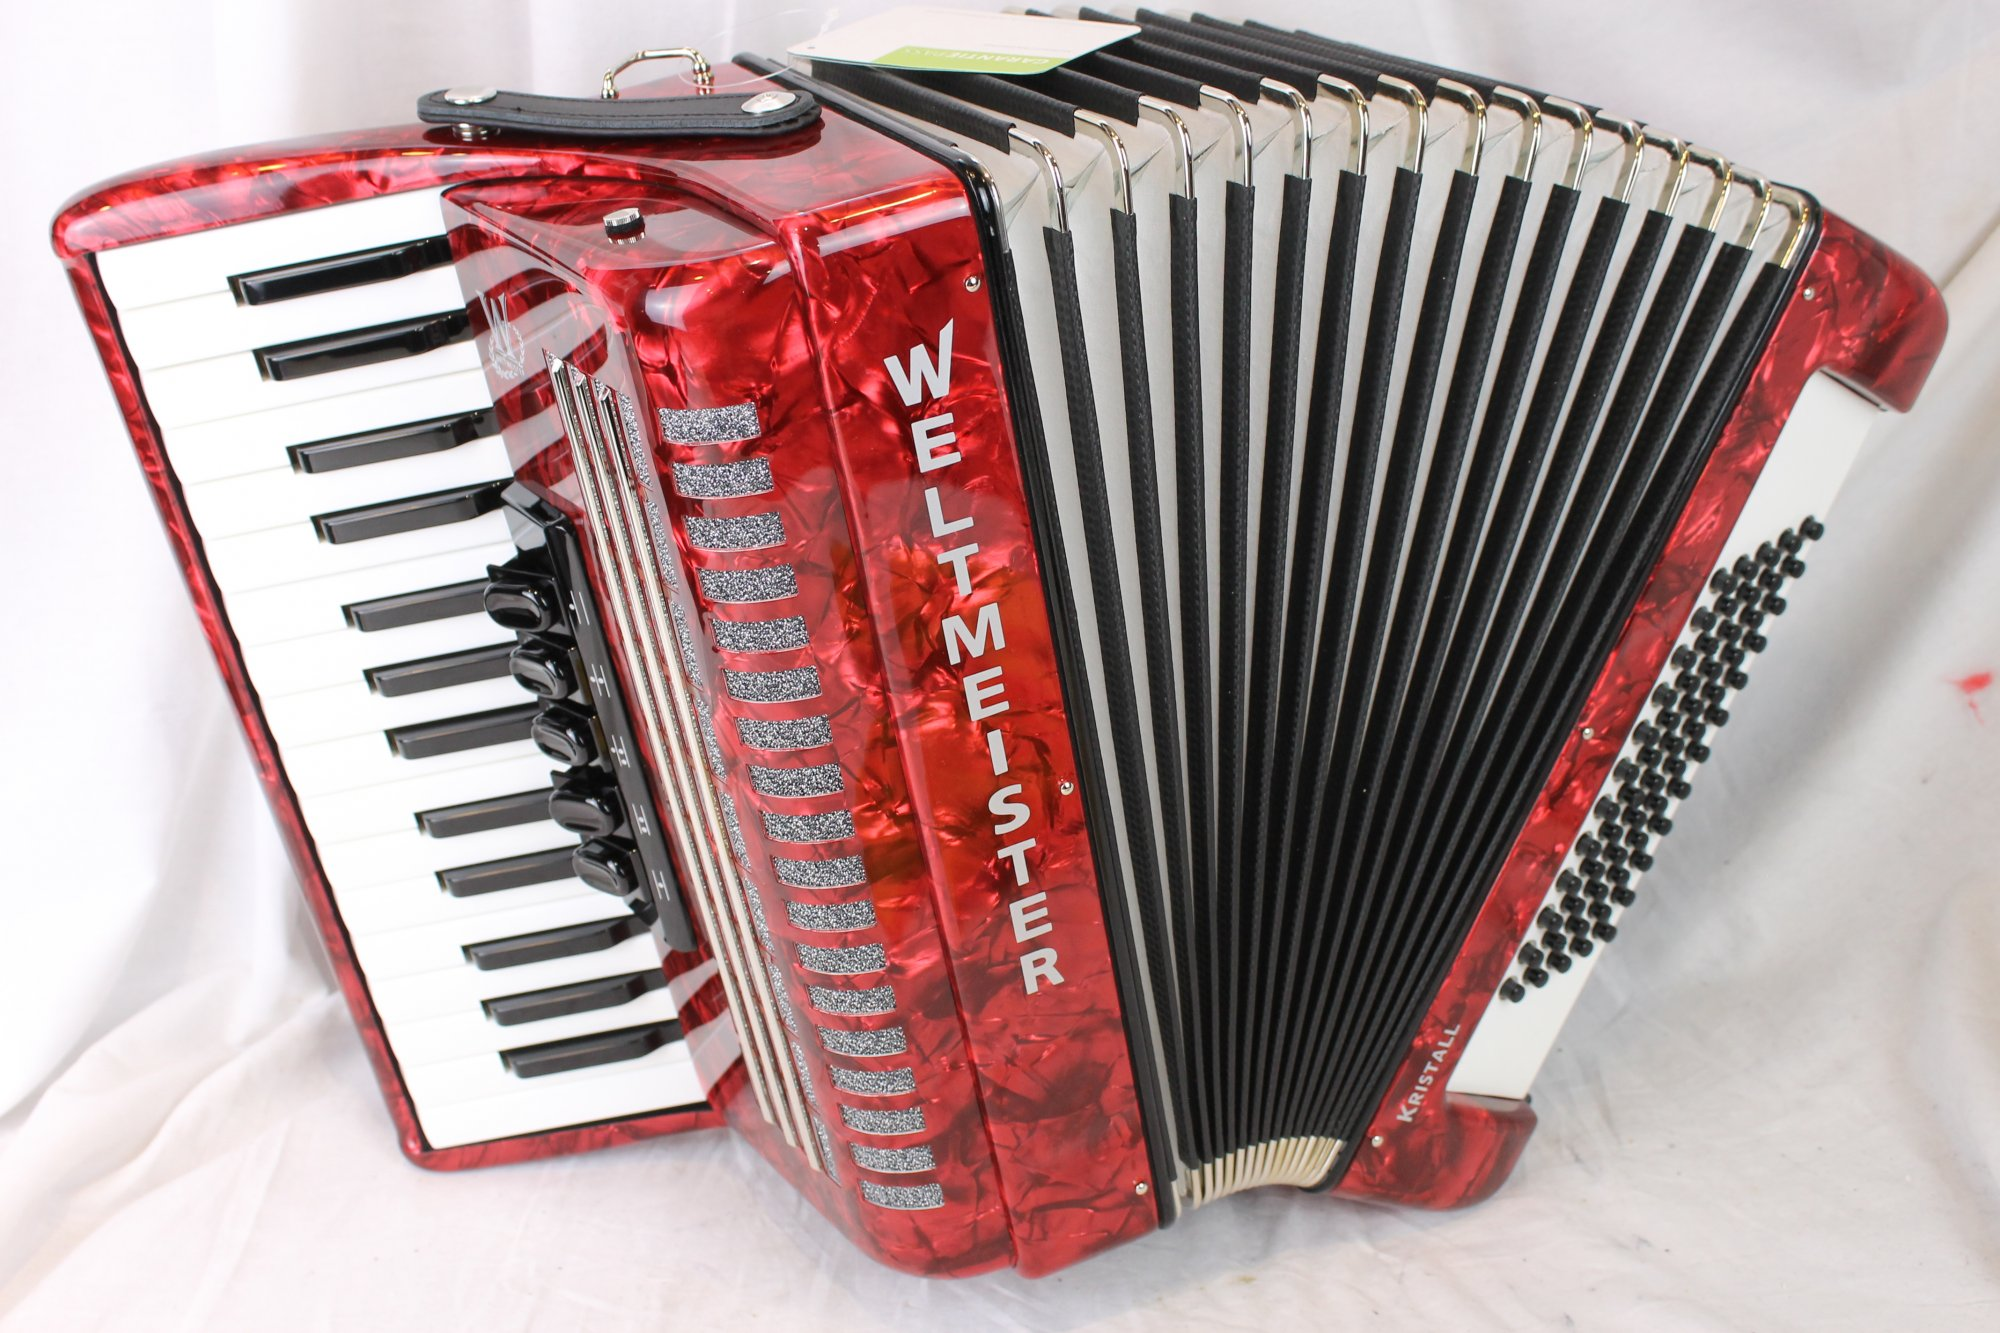 NEW Red Weltmeister Kristall Piano Accordion LMM 30 60